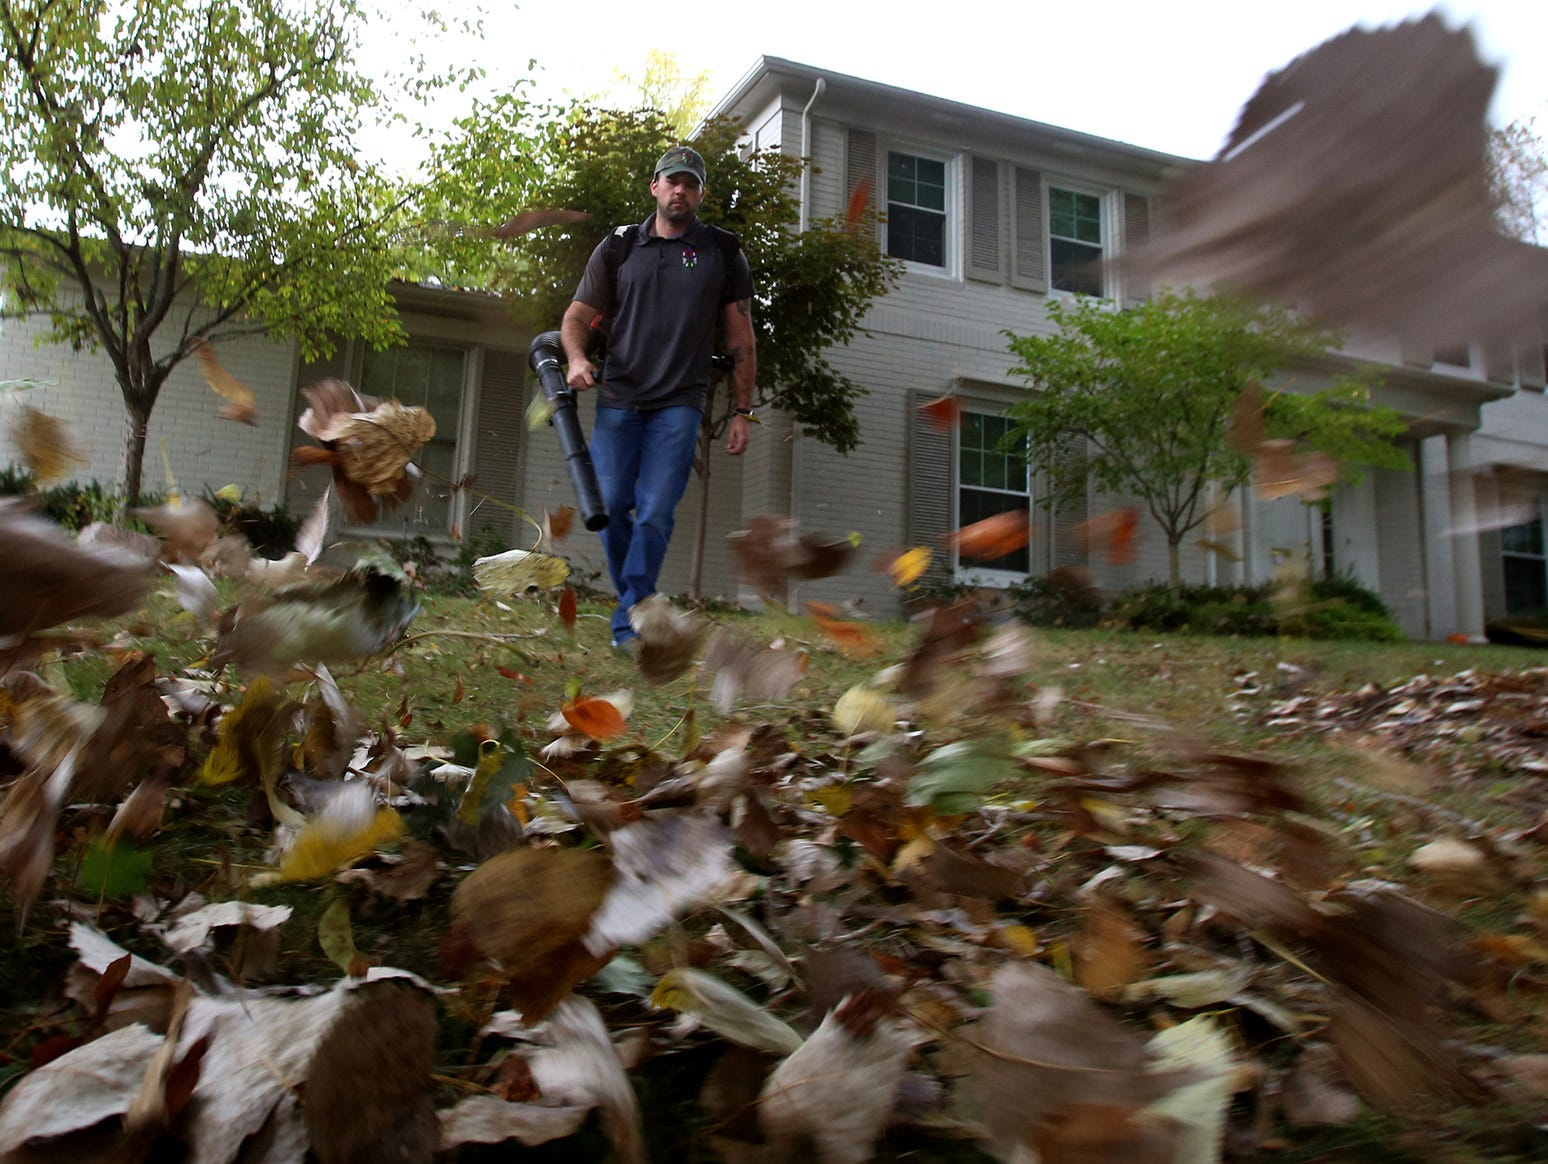 Stars and Stripes Lawn Care co-owner Chris Kamyszek uses a leaf blower to clean up a client's yard in Bloomfield Hills, Mich., on Friday, Oct. 9 2015. Kamyszek thinks that the use of an app like the one from Plowz & Mowz, will help shape the industry